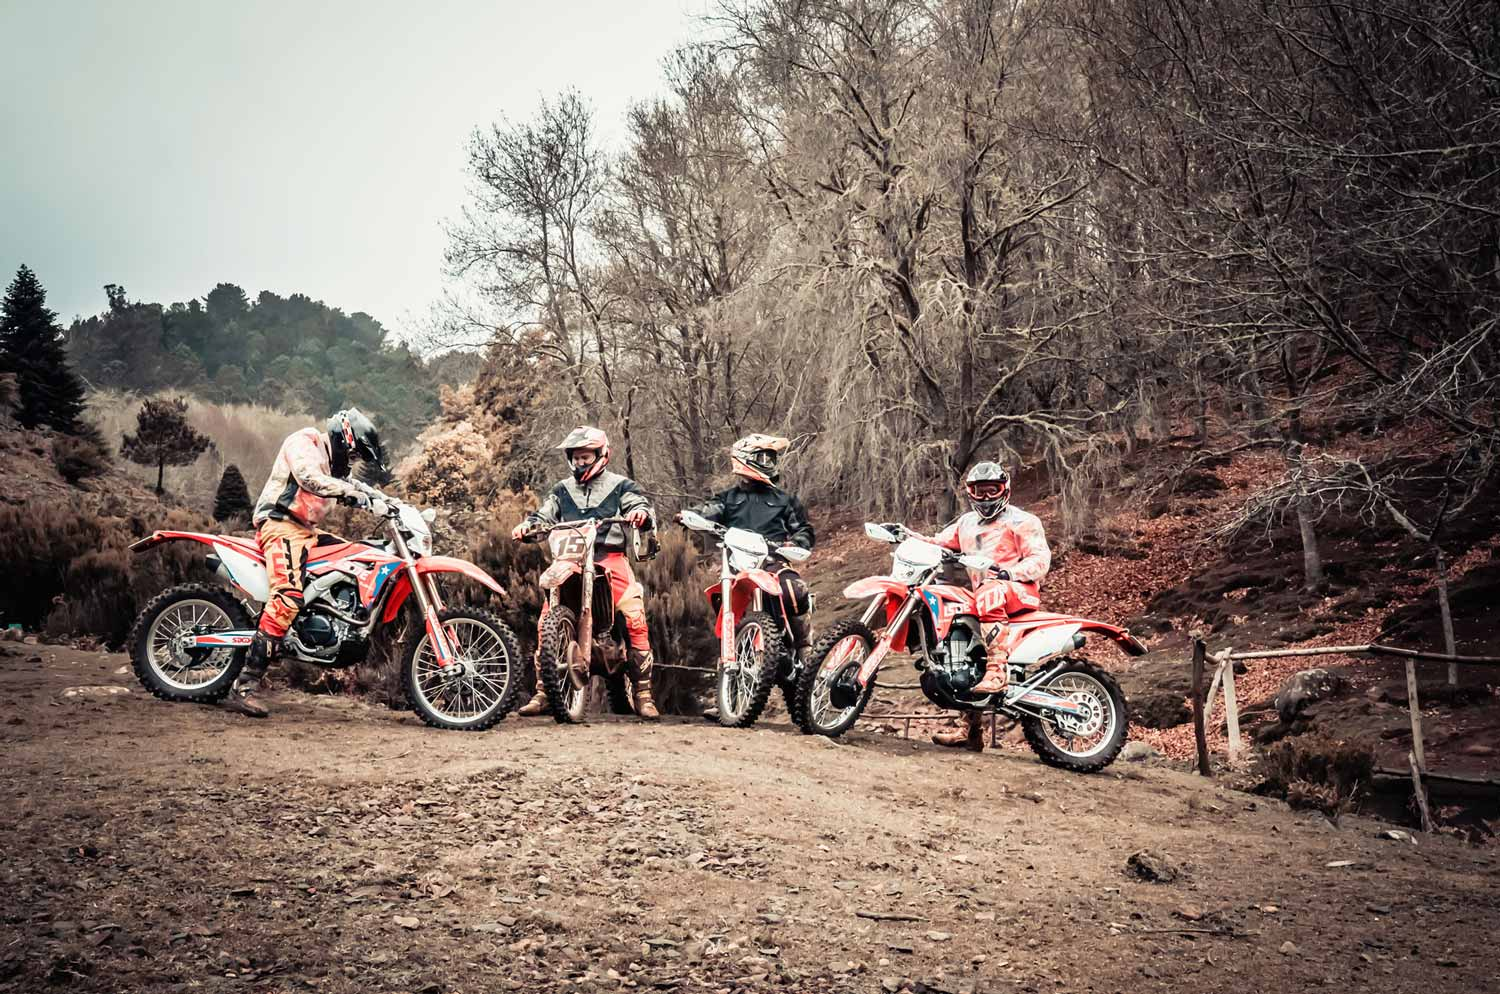 A group of riders posing with their dirt-bikes